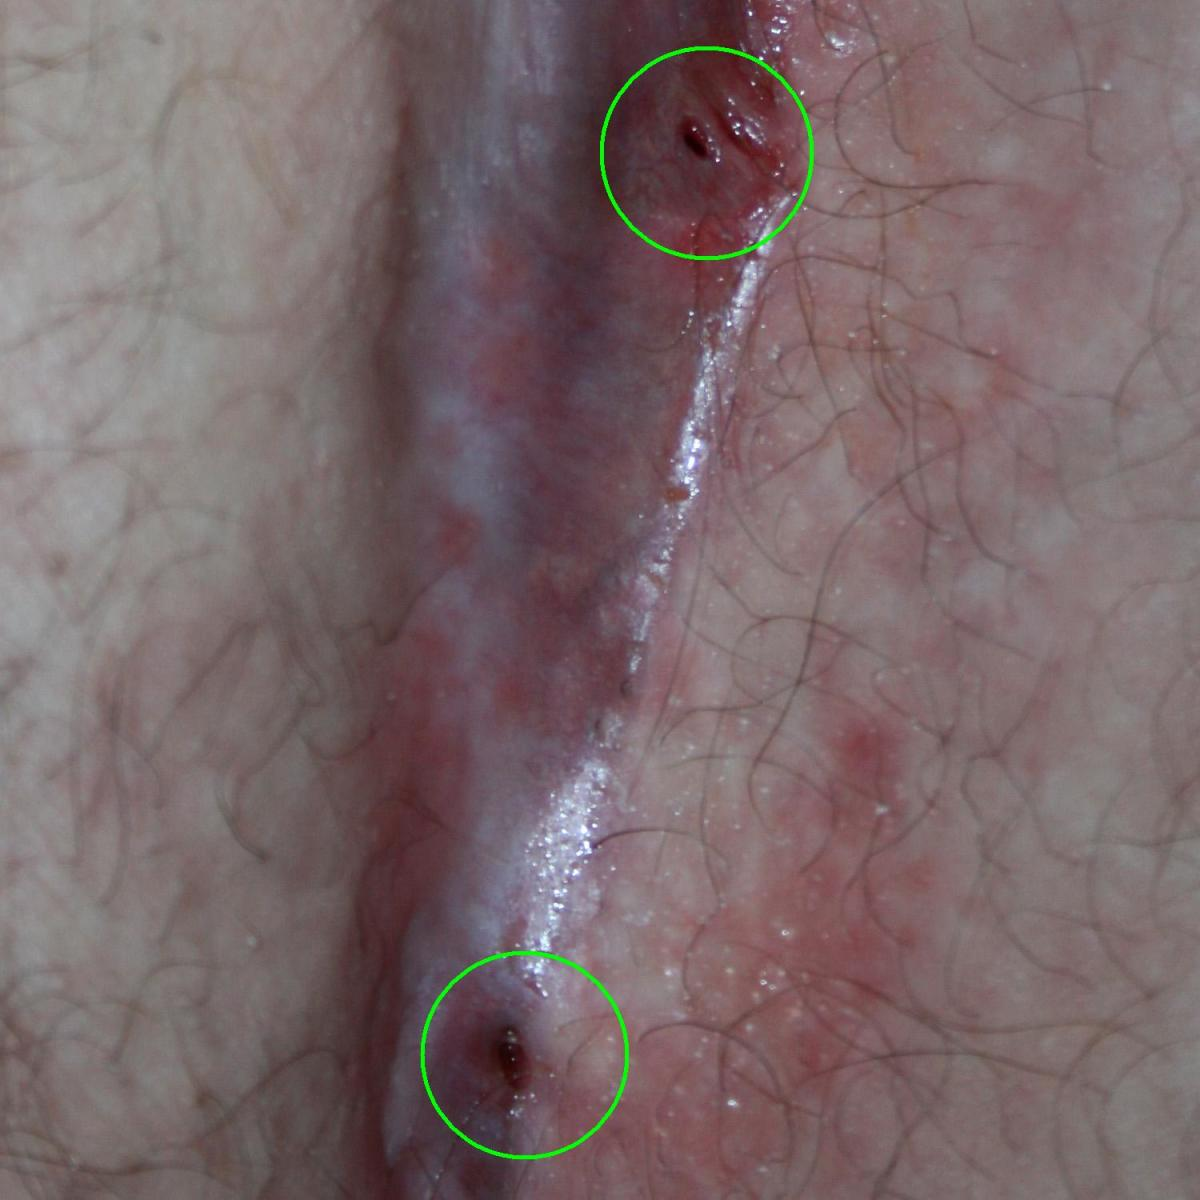 How to Treat a Pilonidal Cyst photo